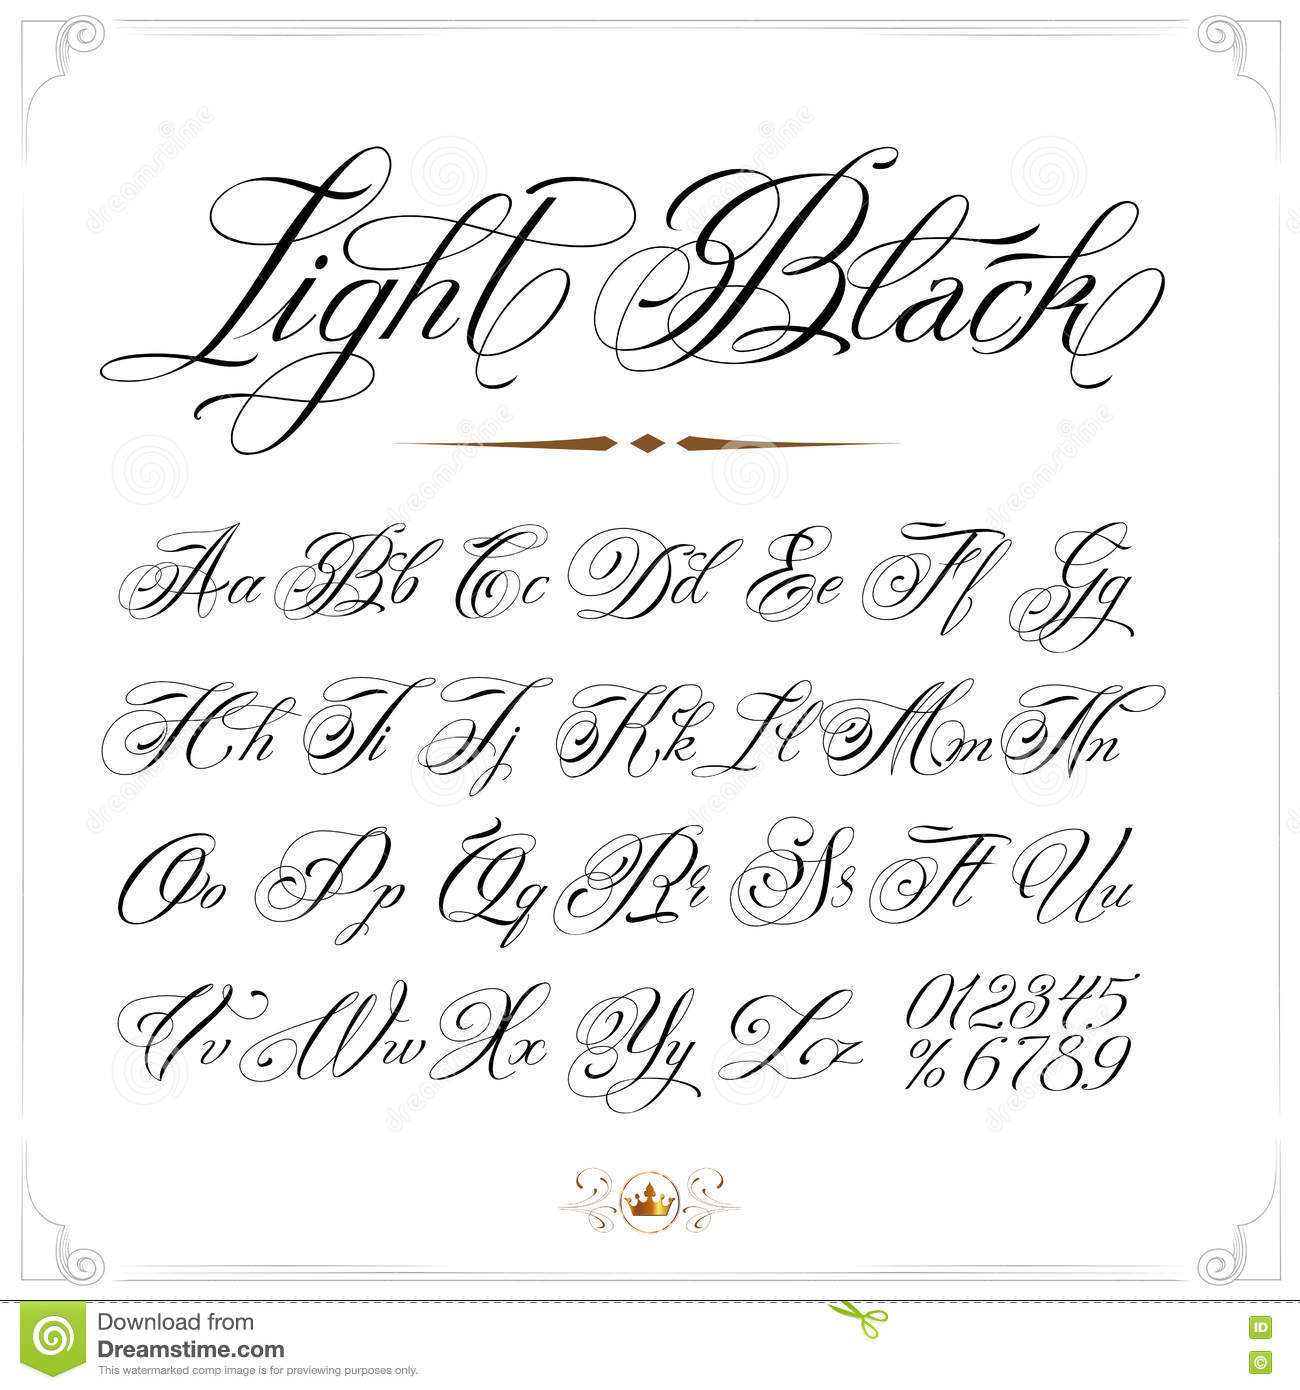 Light Tattoo Font Vector Illustration